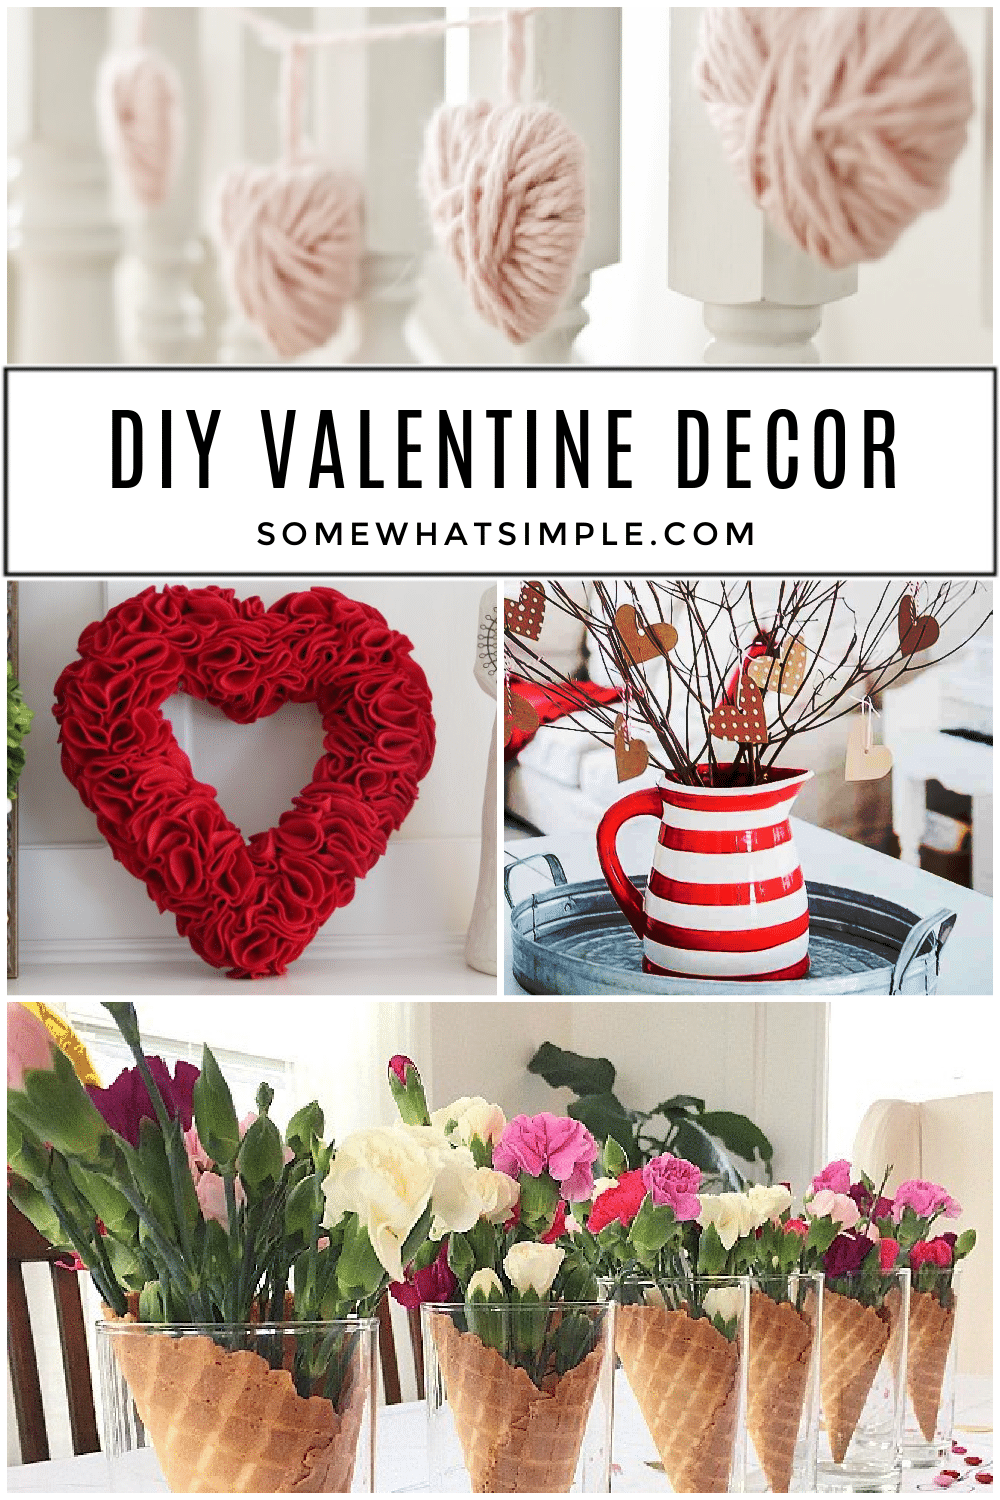 It's time to get creative and decorate your home with all things red, white and pink! Here are 15 DIY Valentine Decor Ideas to help get you started! via @somewhatsimple